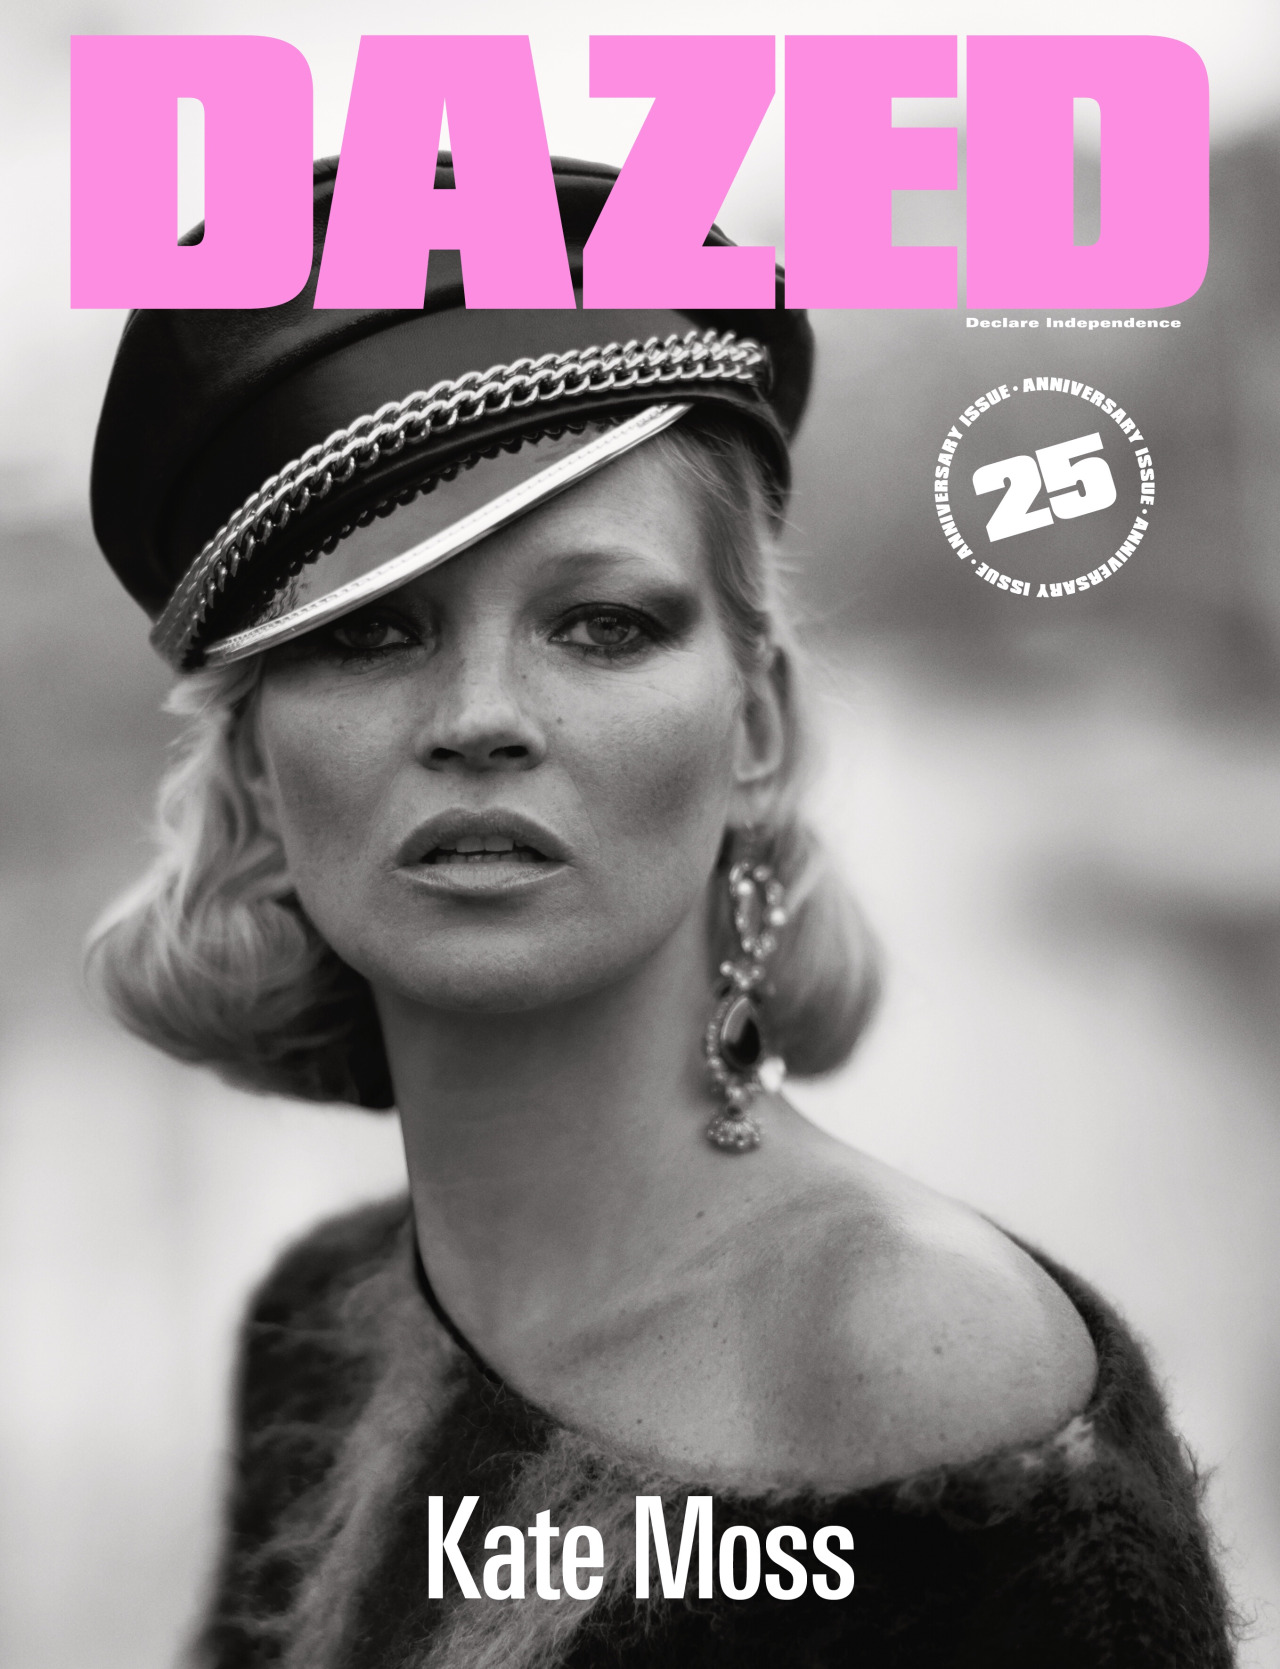 kate-moss-by-ethan-james-green-1